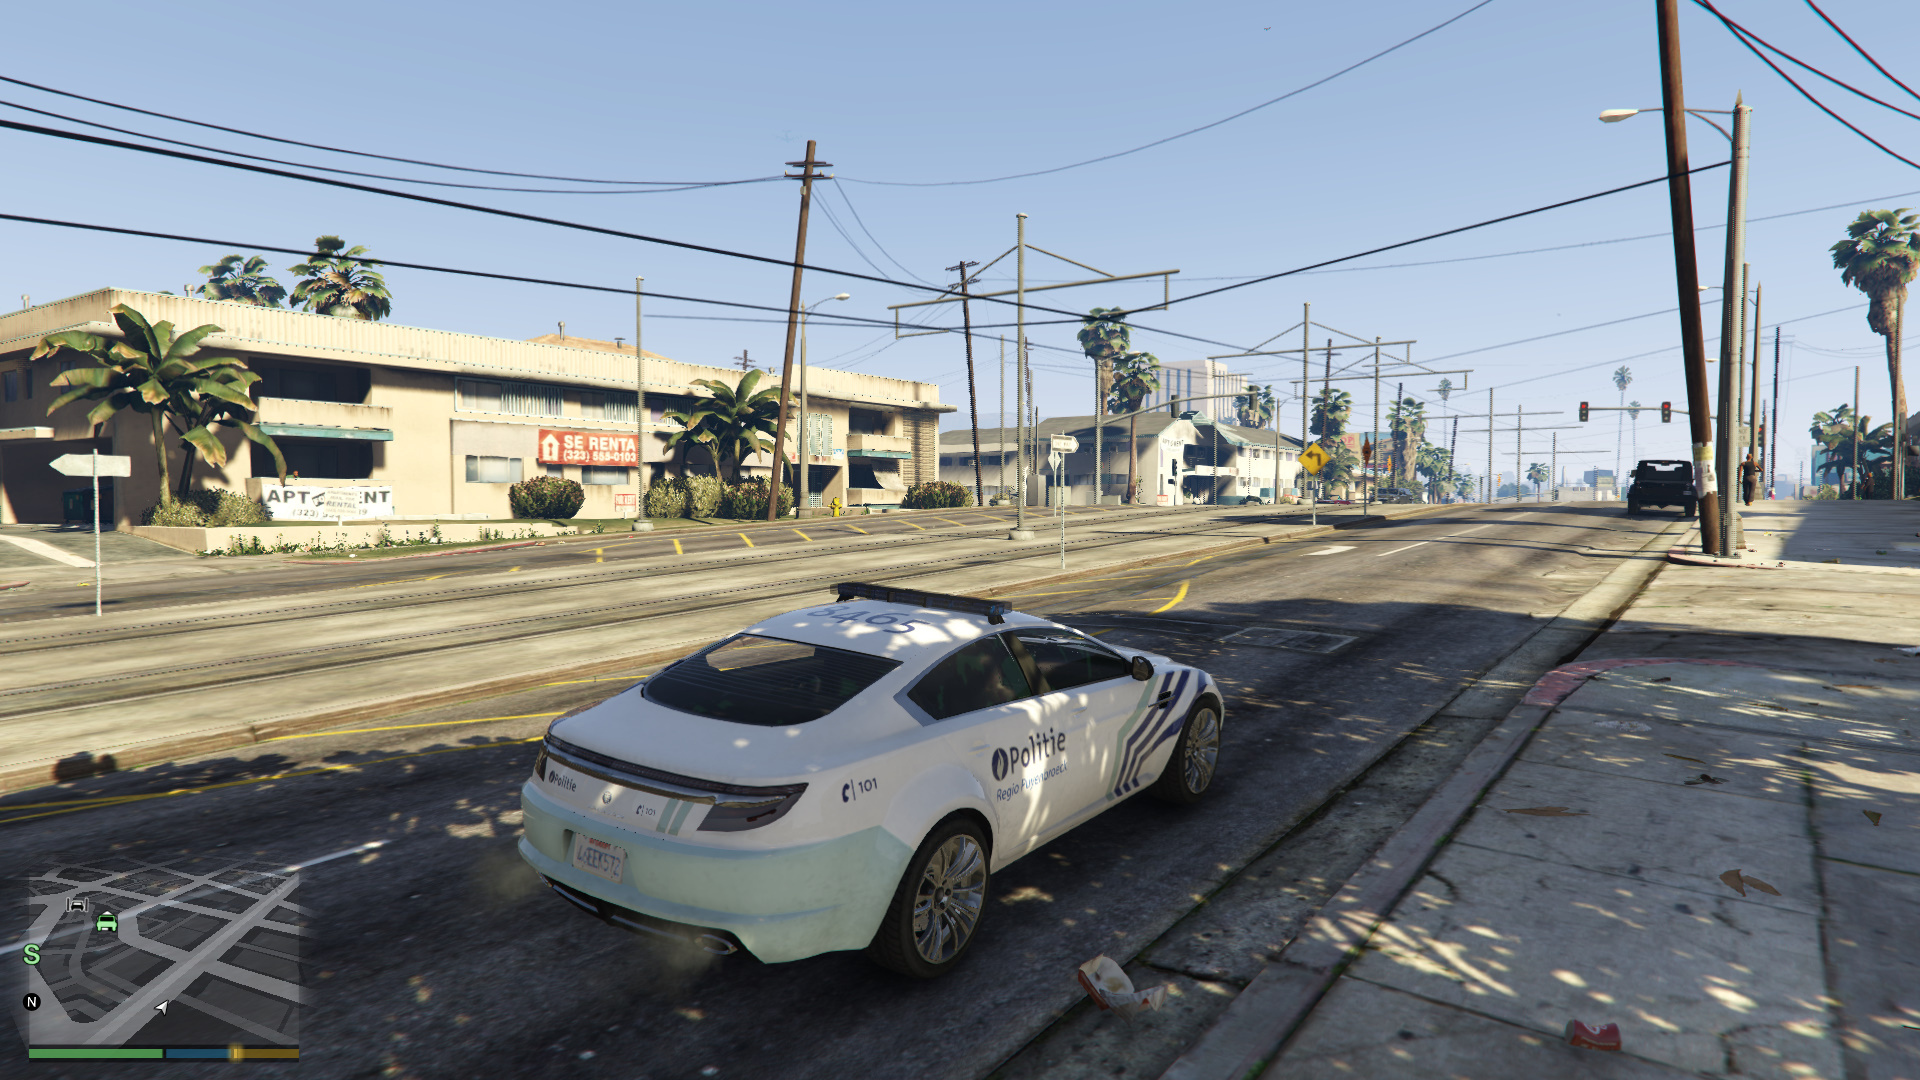 heli cheats with Belgian Police Jaguar 4 Skins Lokale En Federale Politie on Trucos De Vehiculos Para Gta V in addition Gta 5 Cheats Fuer Playstation 3 Und Xbox 360 likewise Pc Screenshots moreover Boeing 747 200 Supertanker Firefighting Aircraft Add On moreover Screenshots.